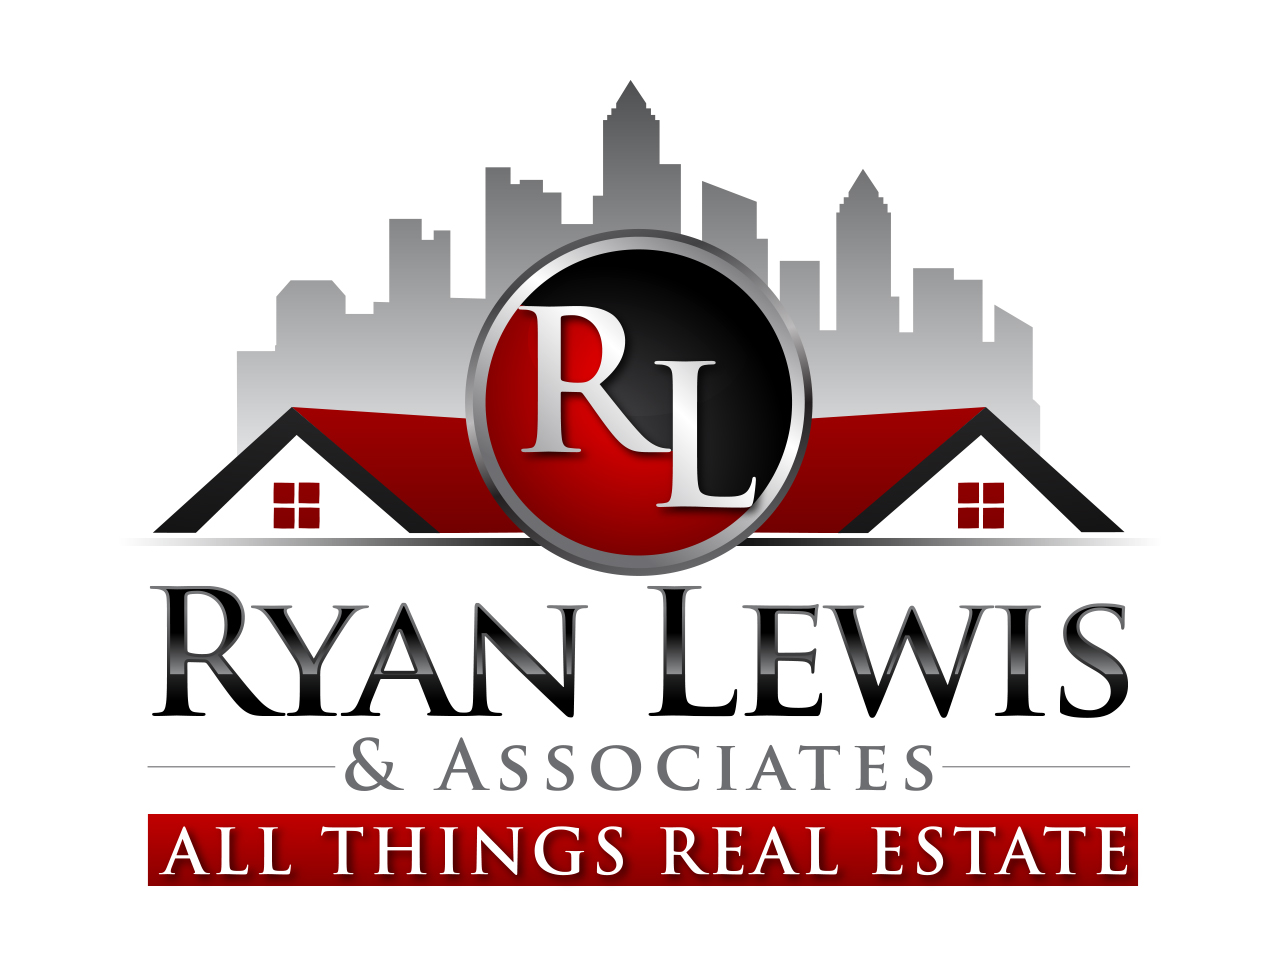 Ryan Lewis and Associates